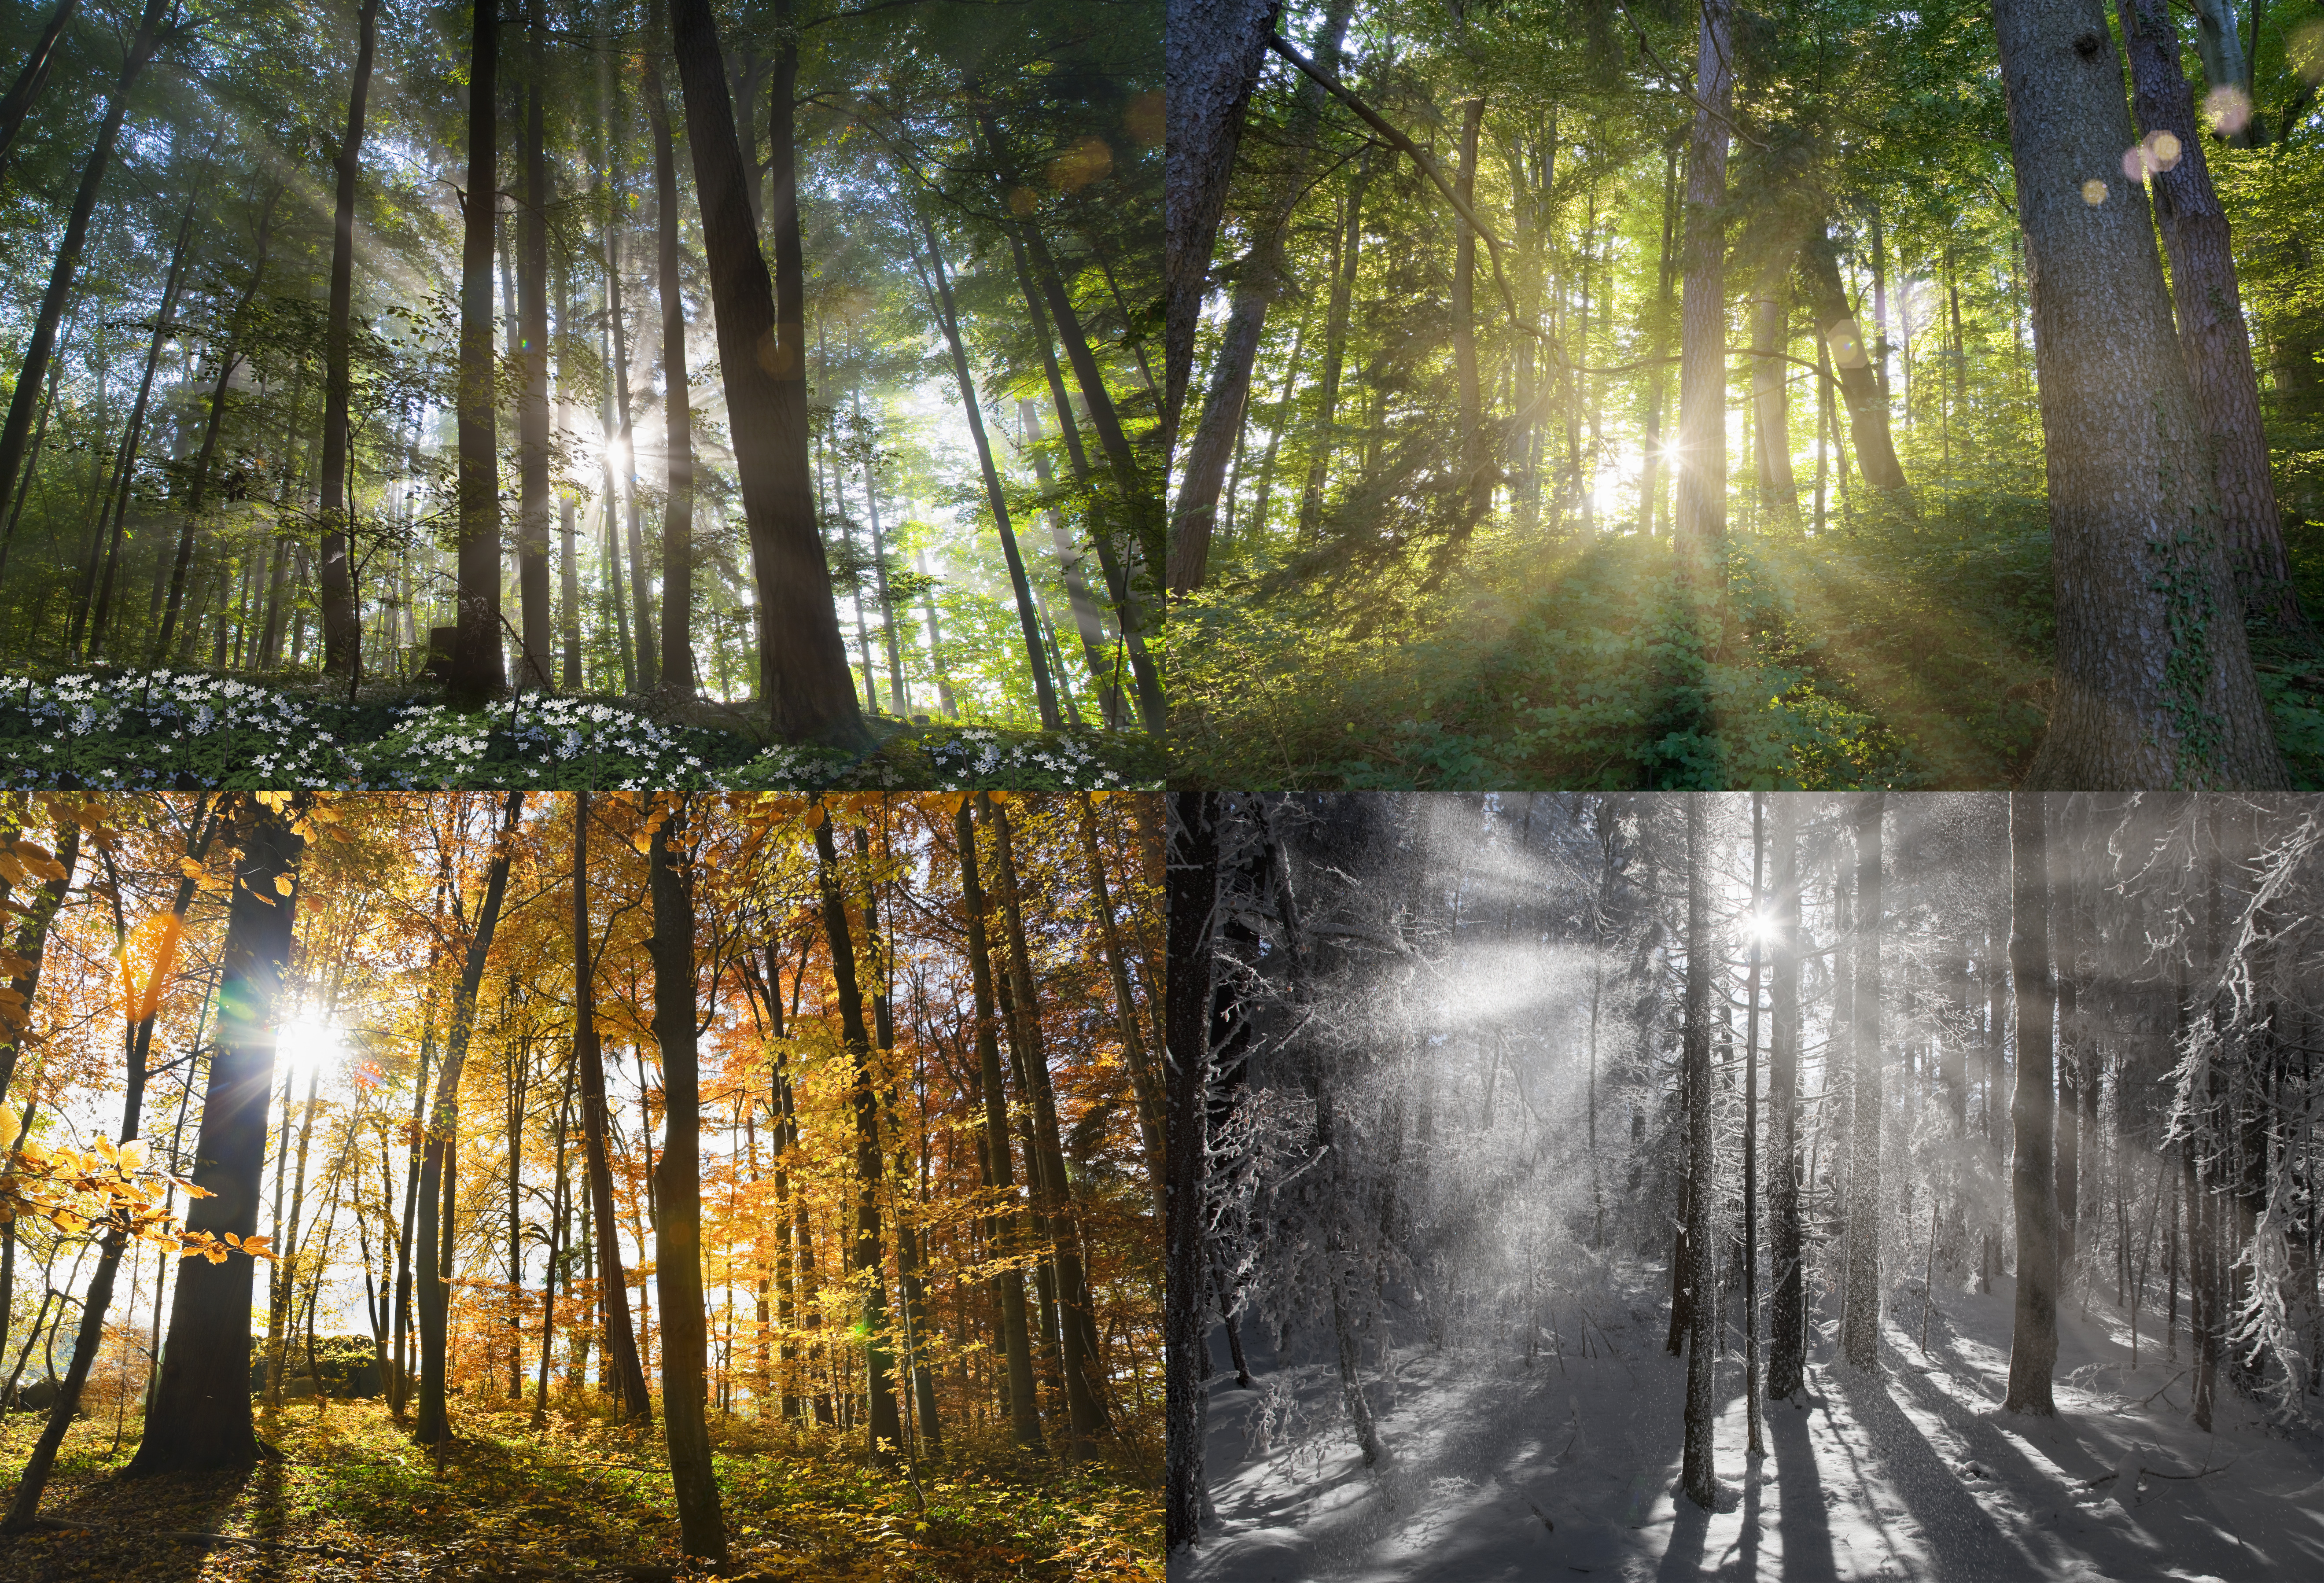 Views of four seasons of forest